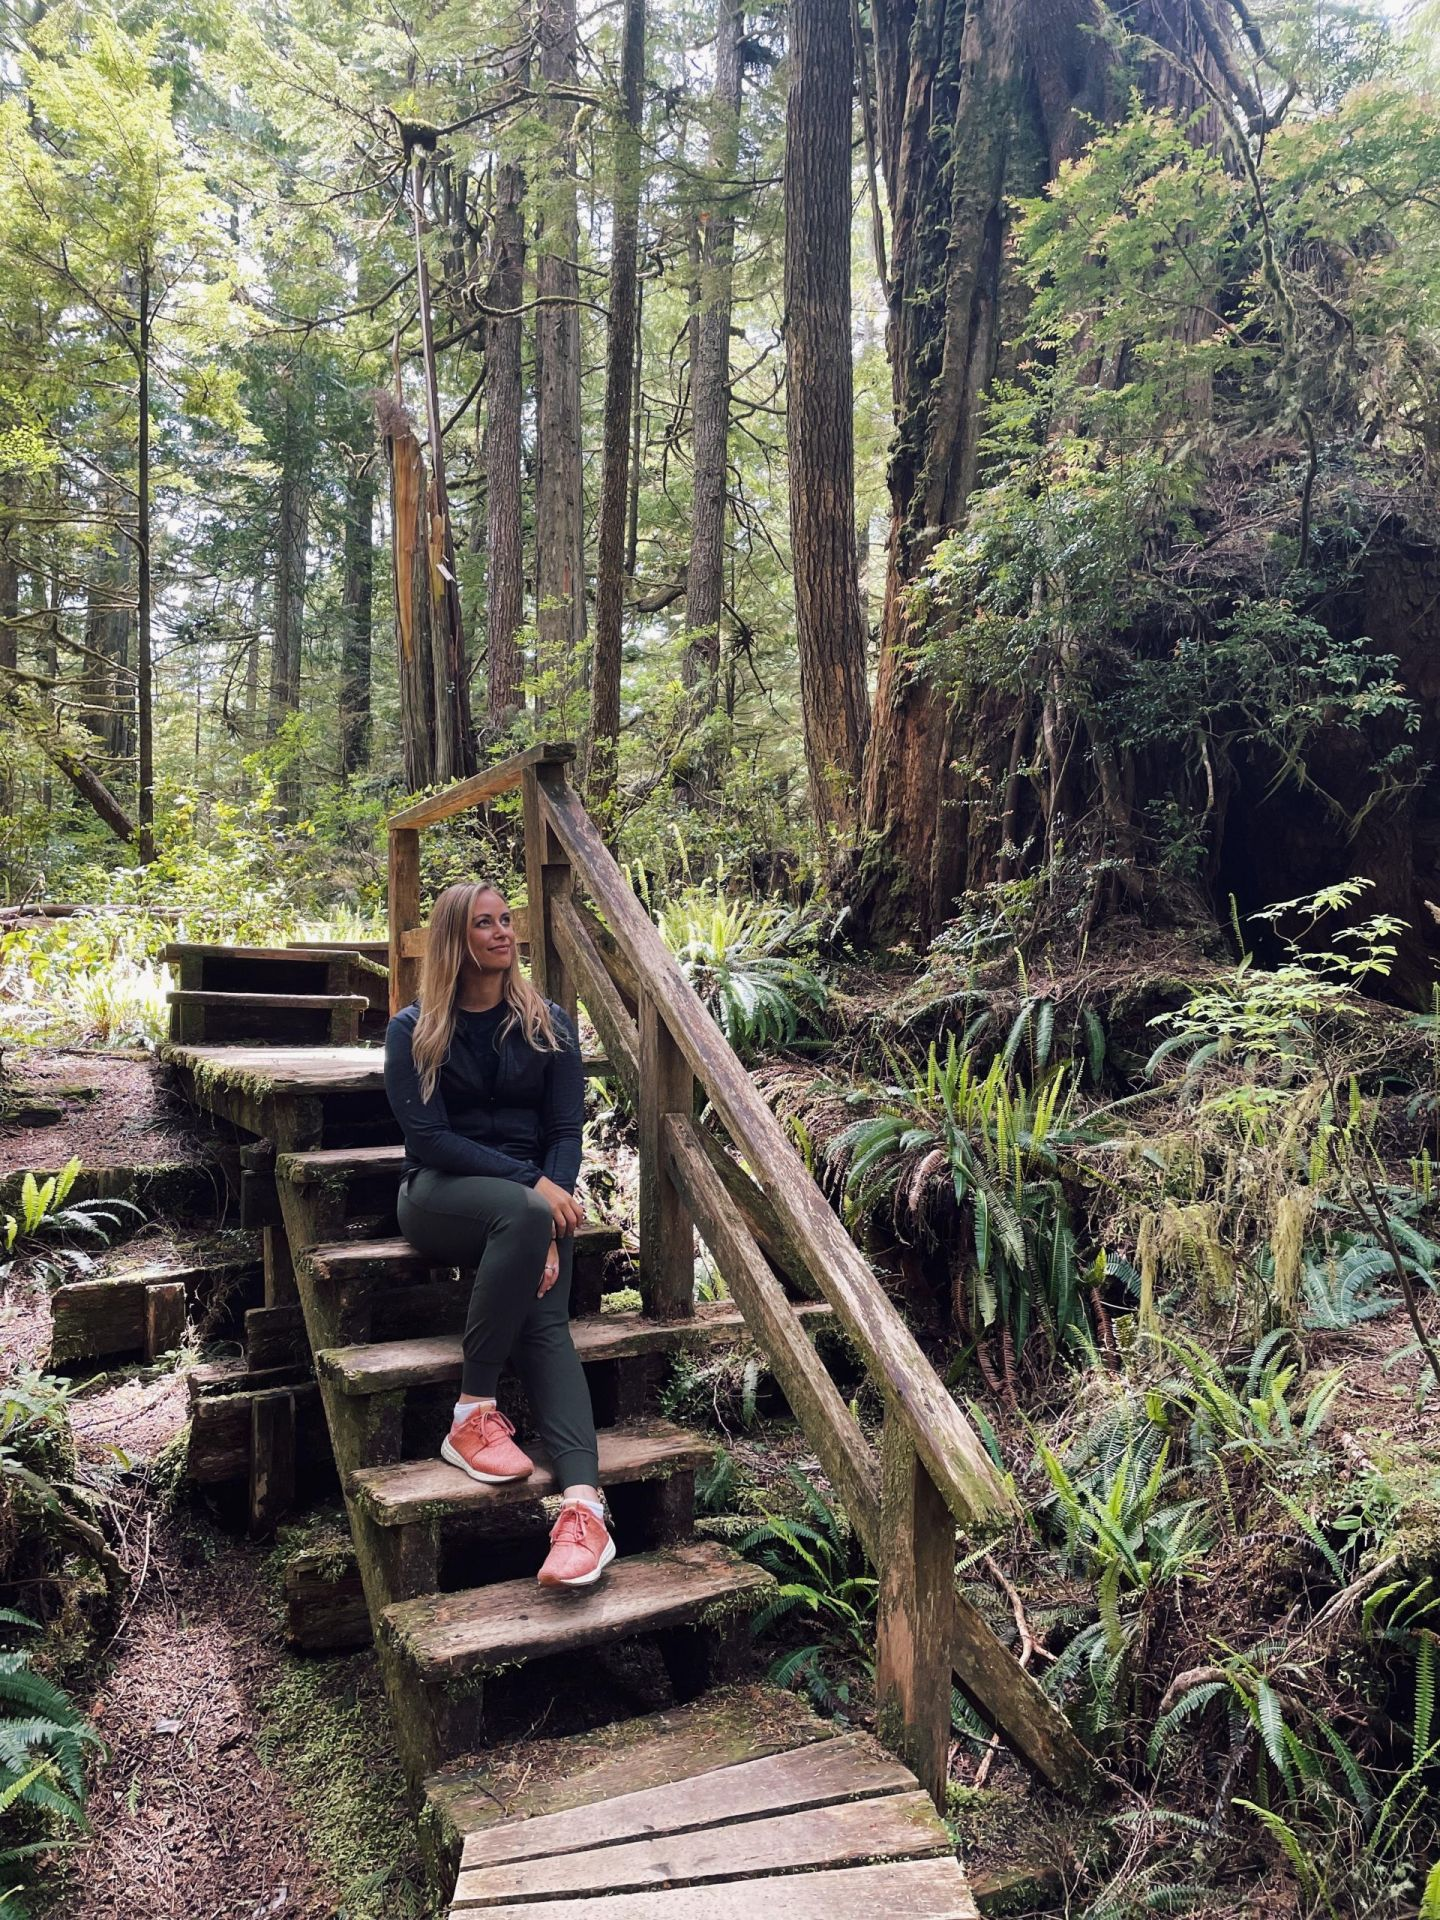 Exploring a new side of Tofino